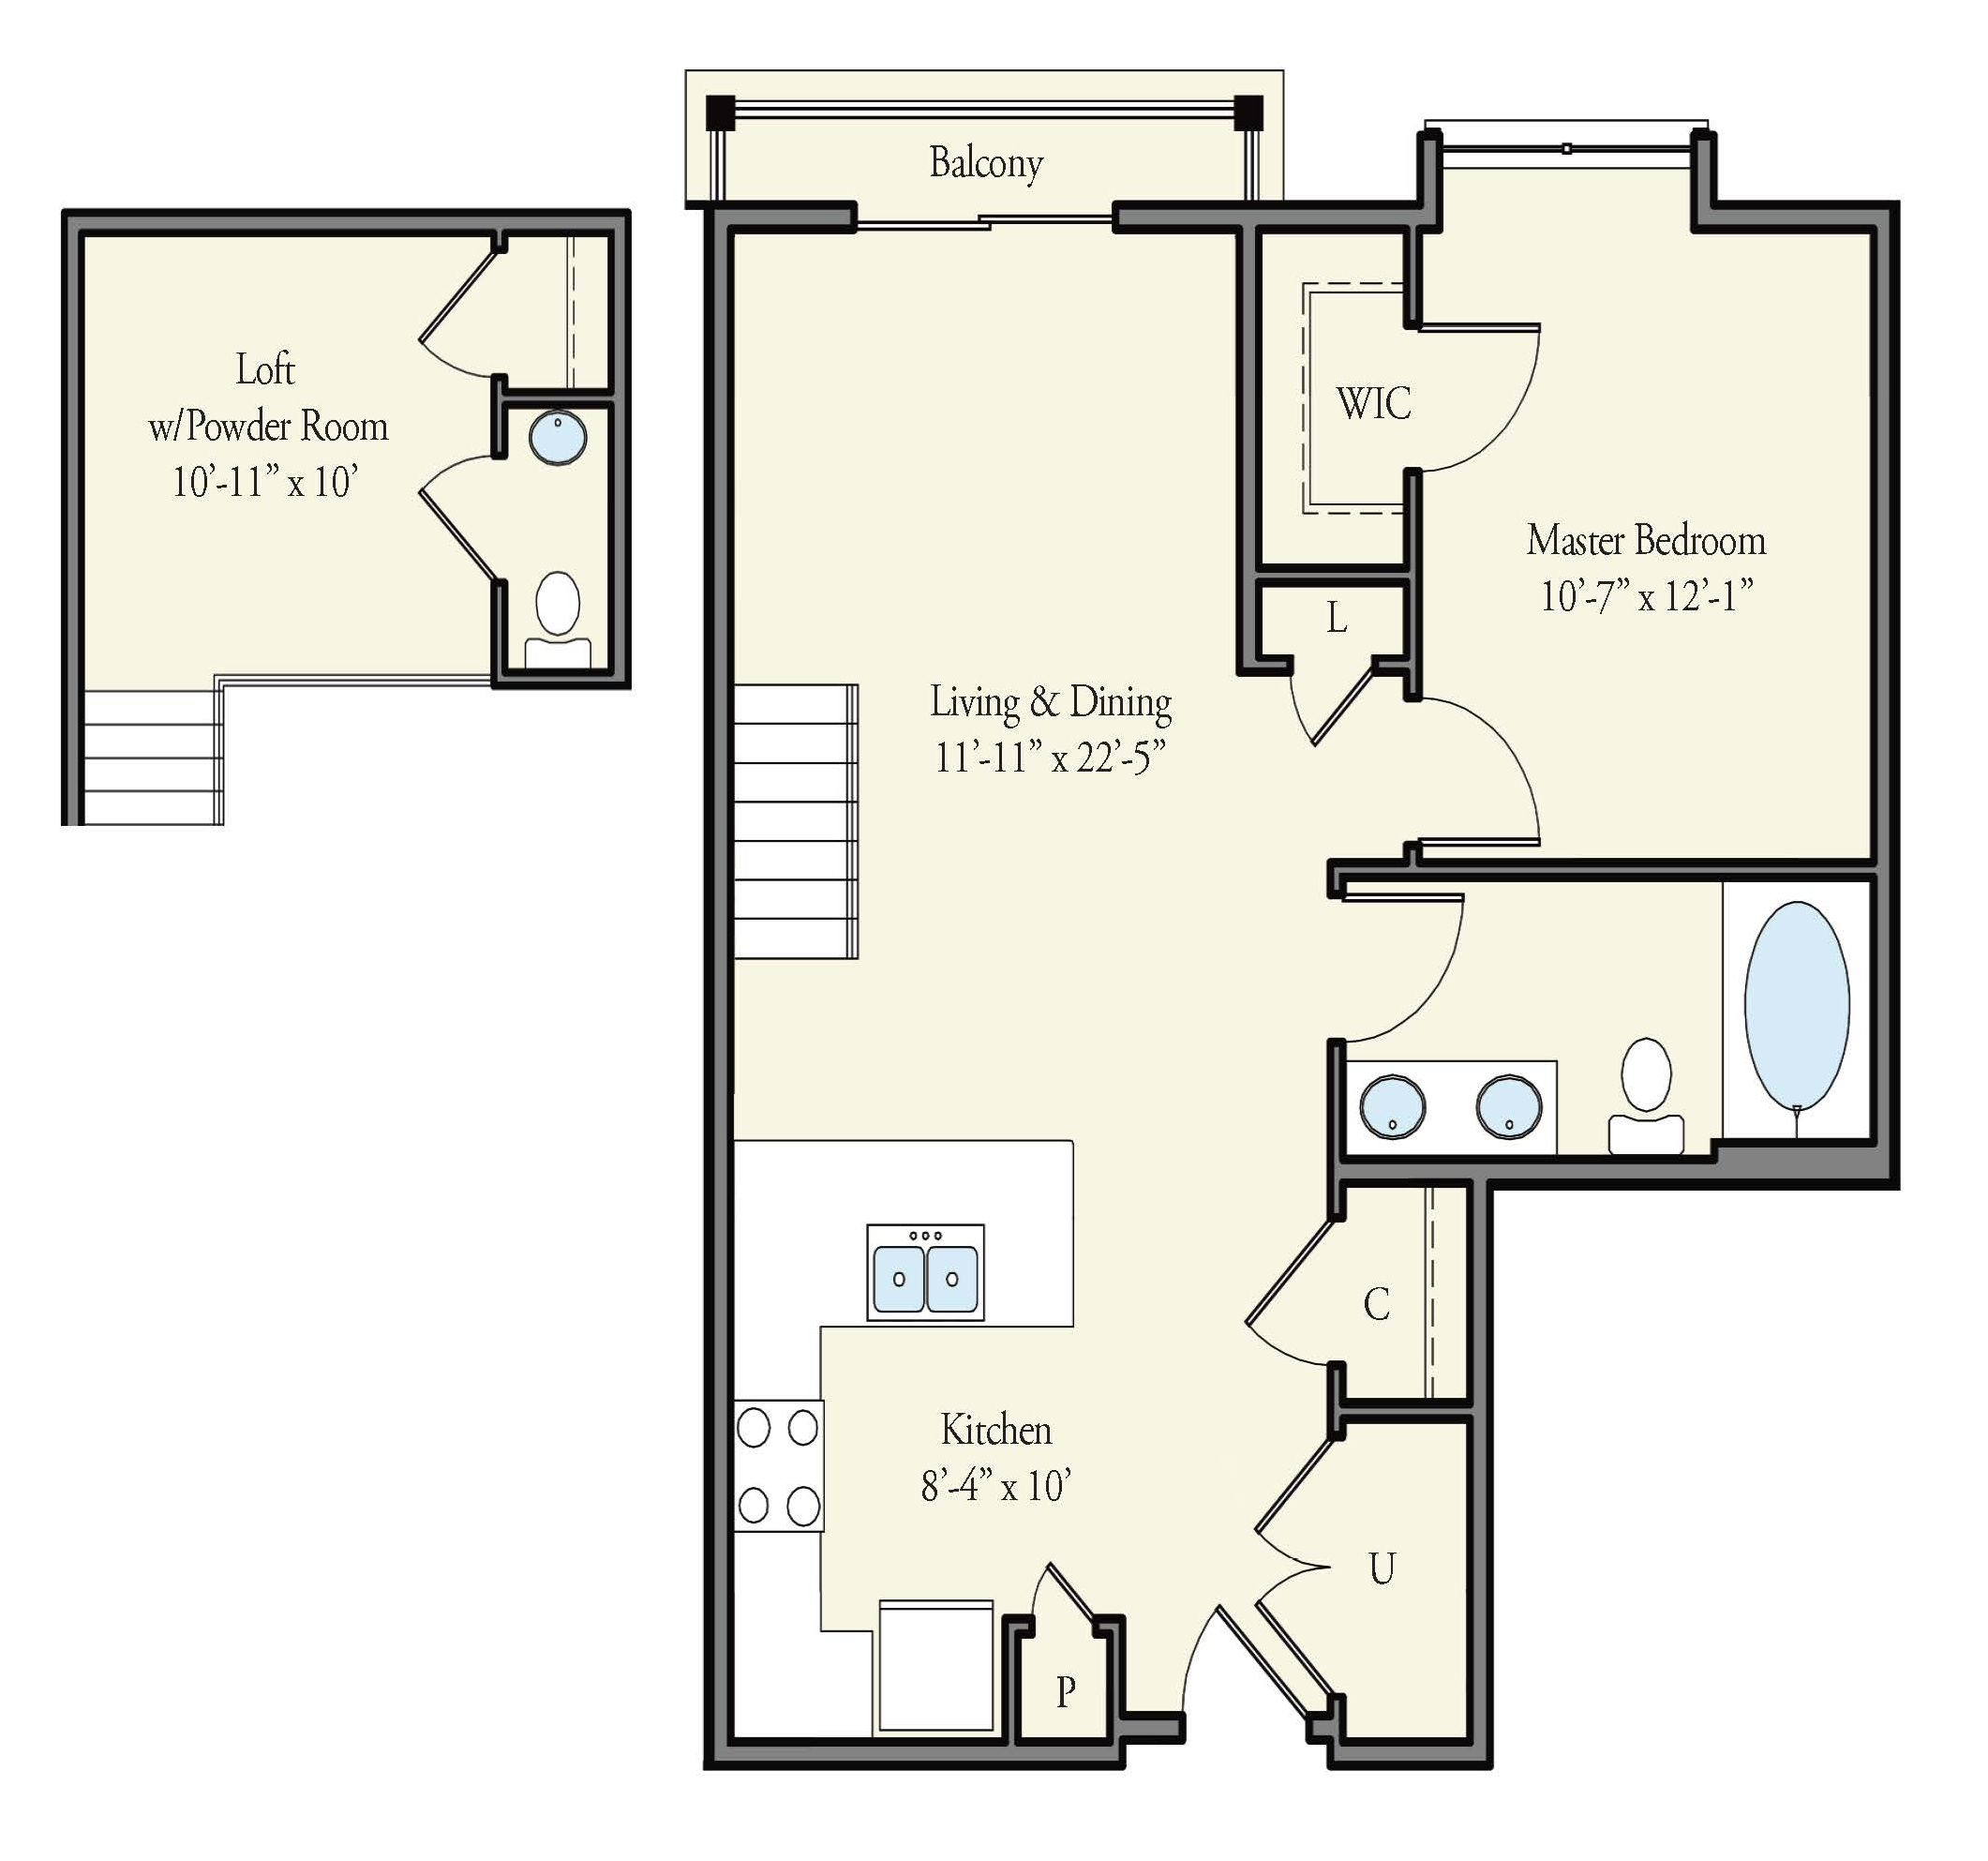 The Watermark - Floorplan - St. Andrews